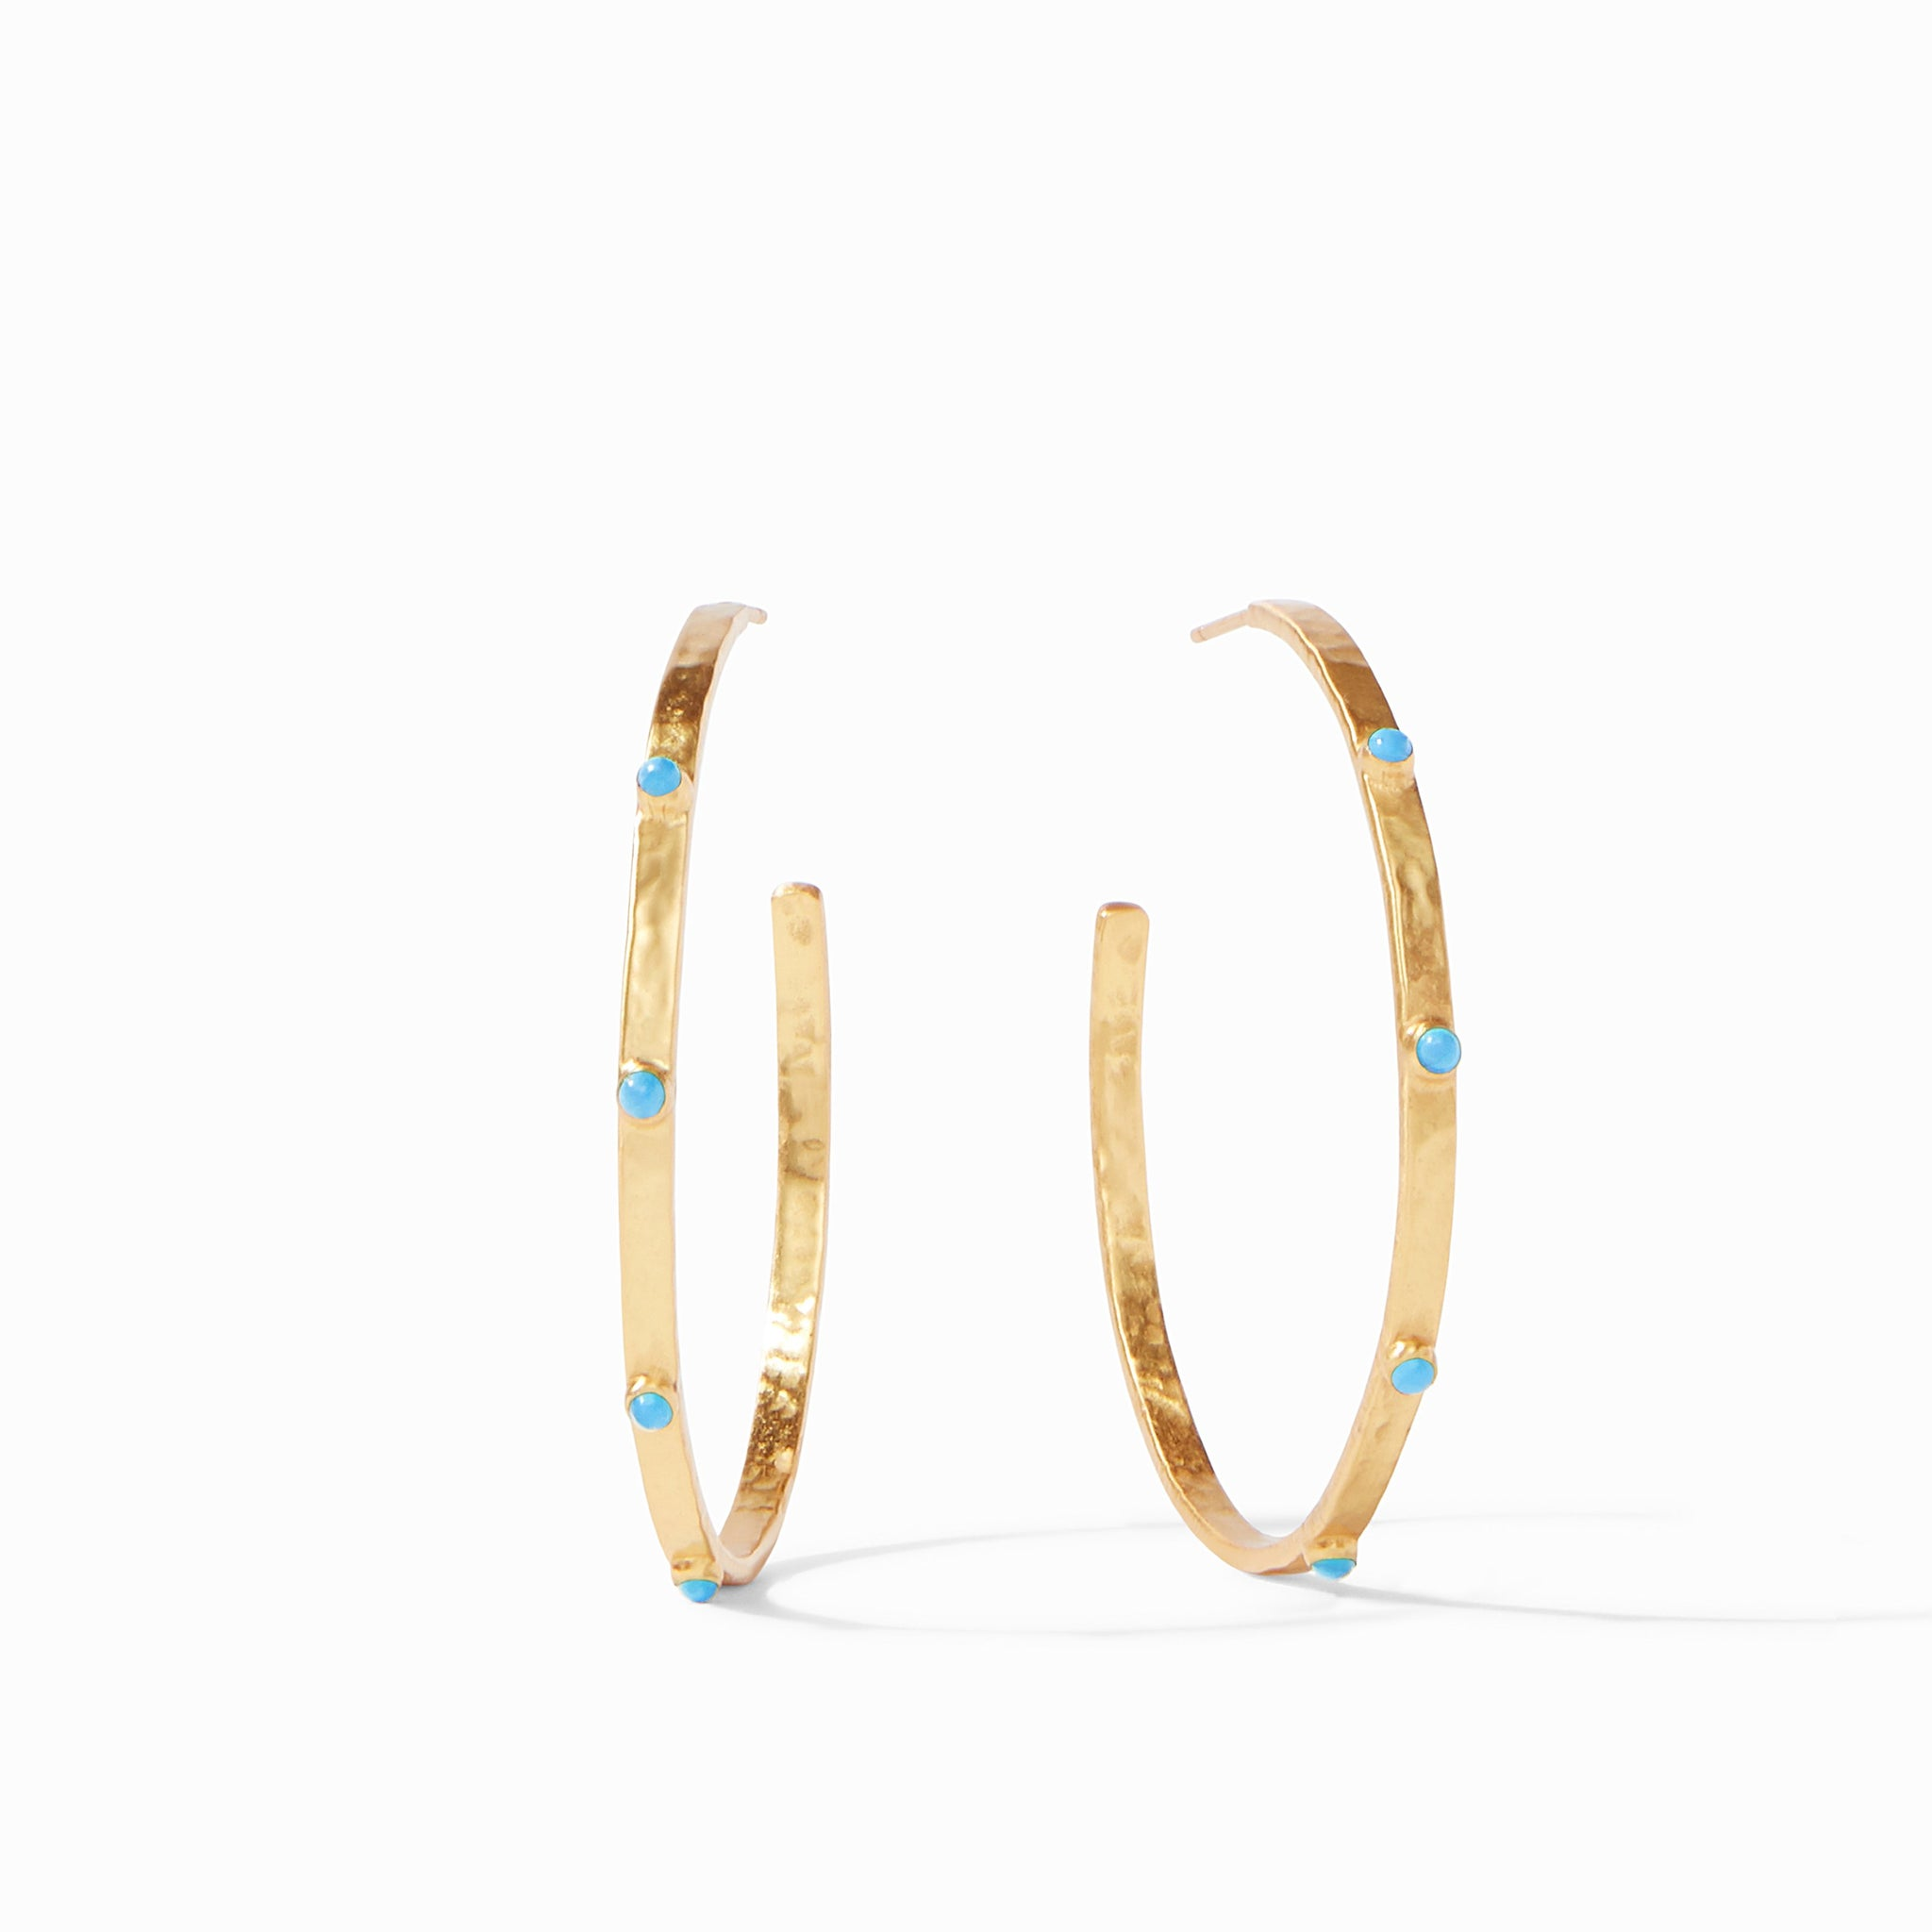 Pacific Blue, L, resort, aspen collection, New Spring Jewels, into the blue